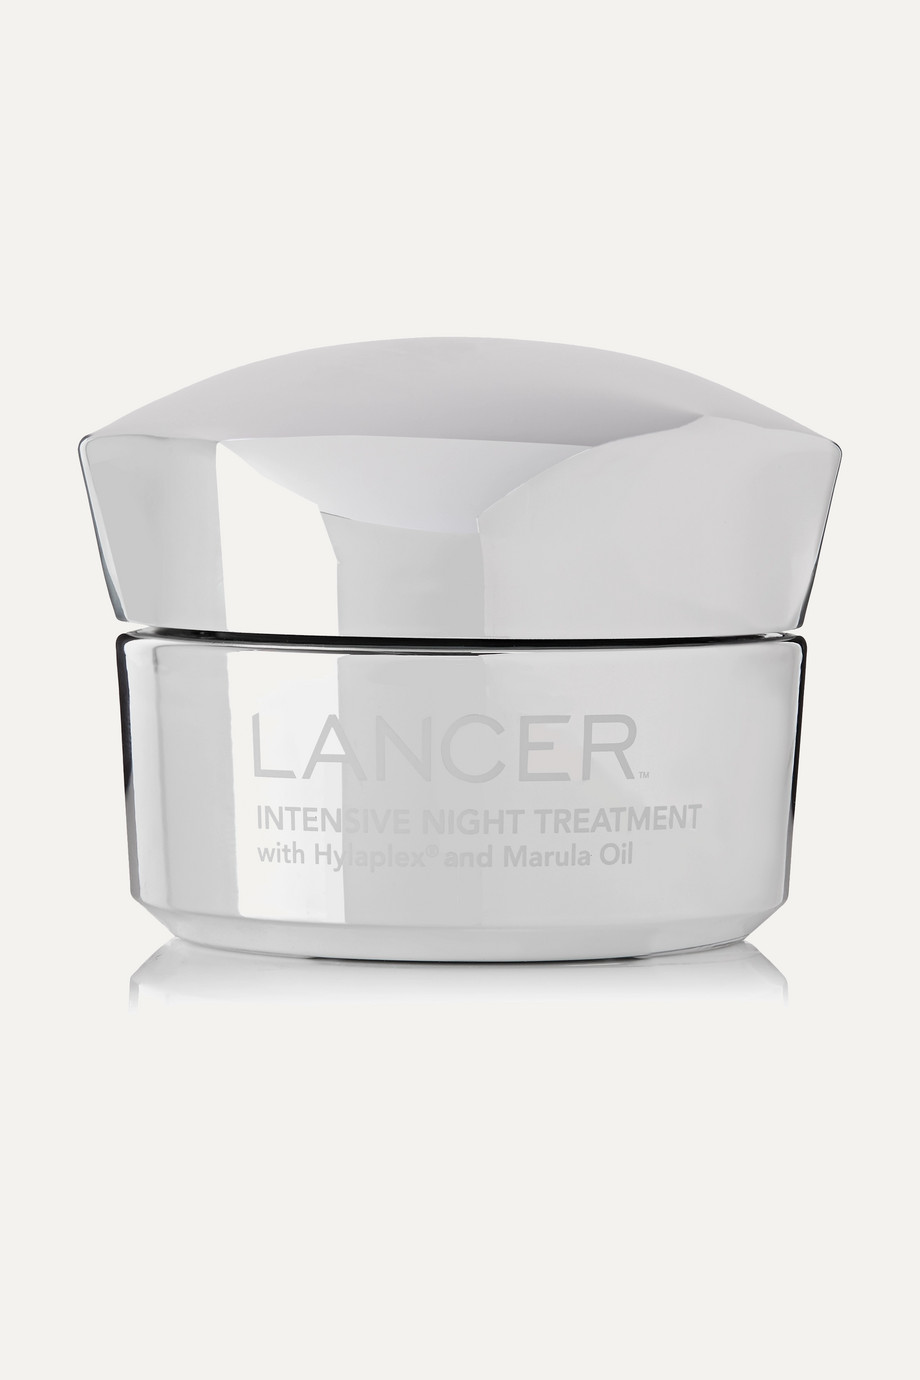 Lancer Intensive Night Treatment, 50ml